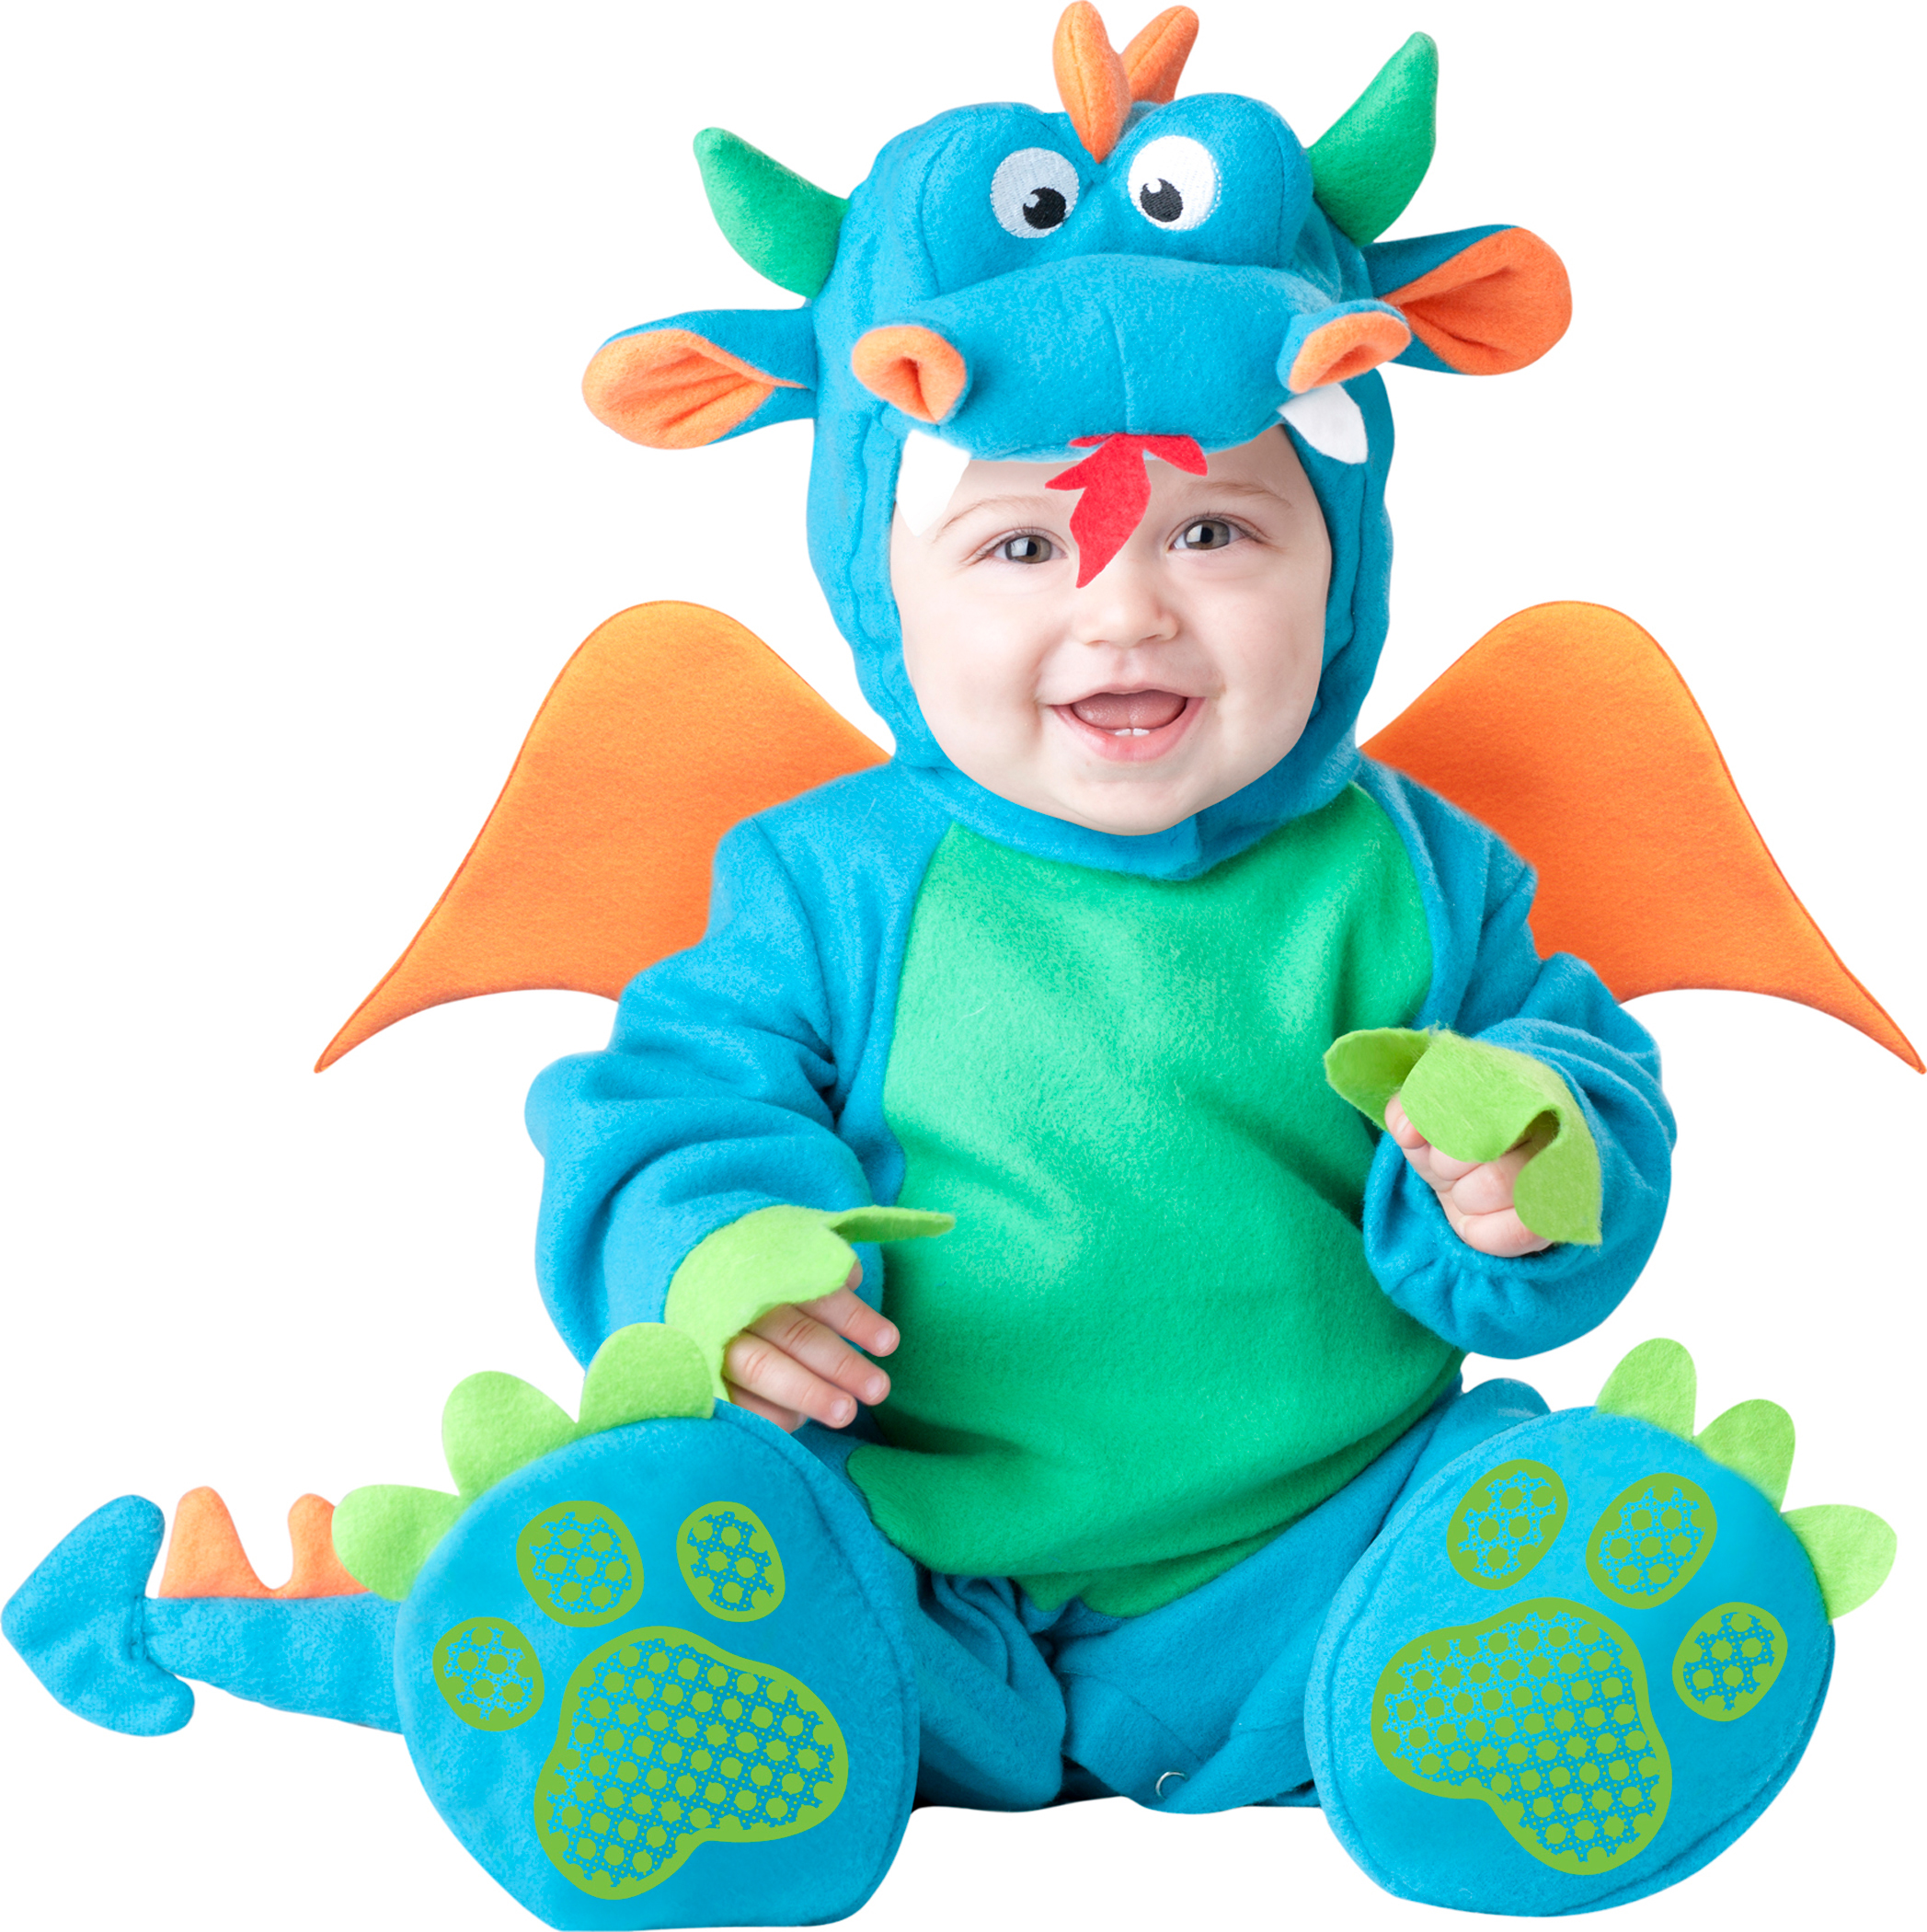 Lil Dragon Baby Fancy Dress Fairytale Animal Boys Toddlers Infants